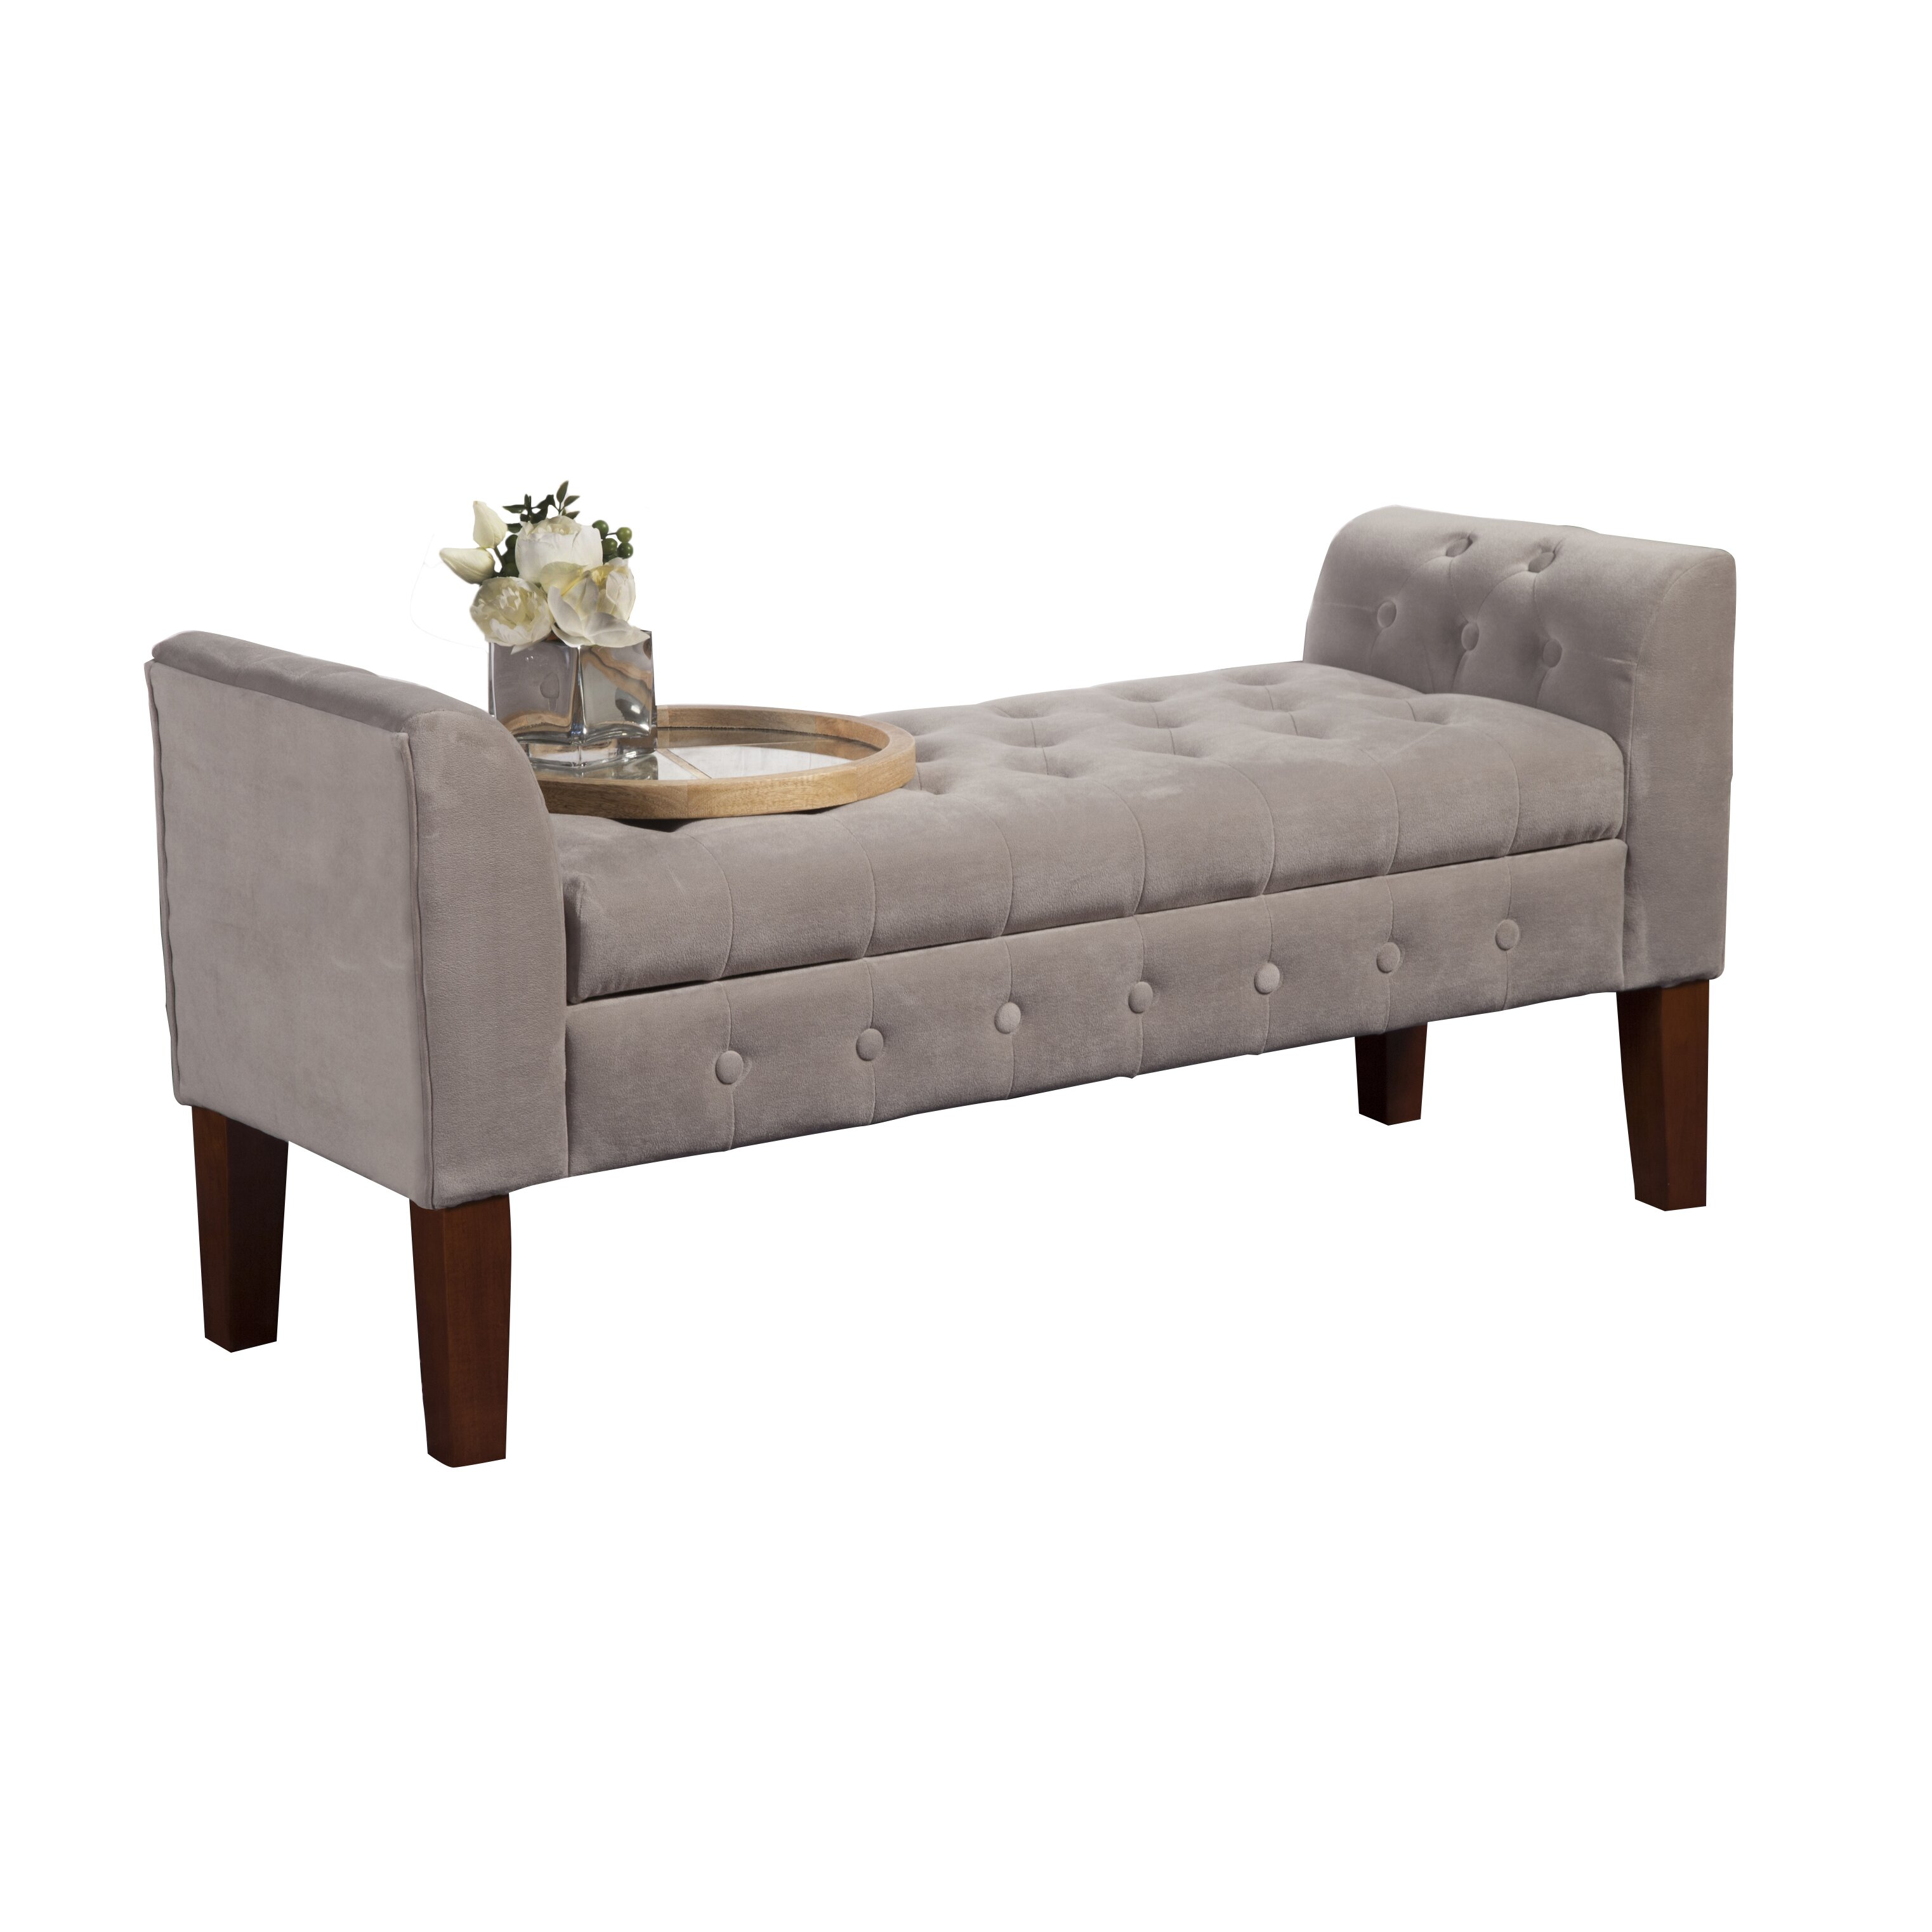 Adecotrading Storage Bedroom Bench Reviews: Three Posts Wilford Upholstered Storage Bedroom Bench